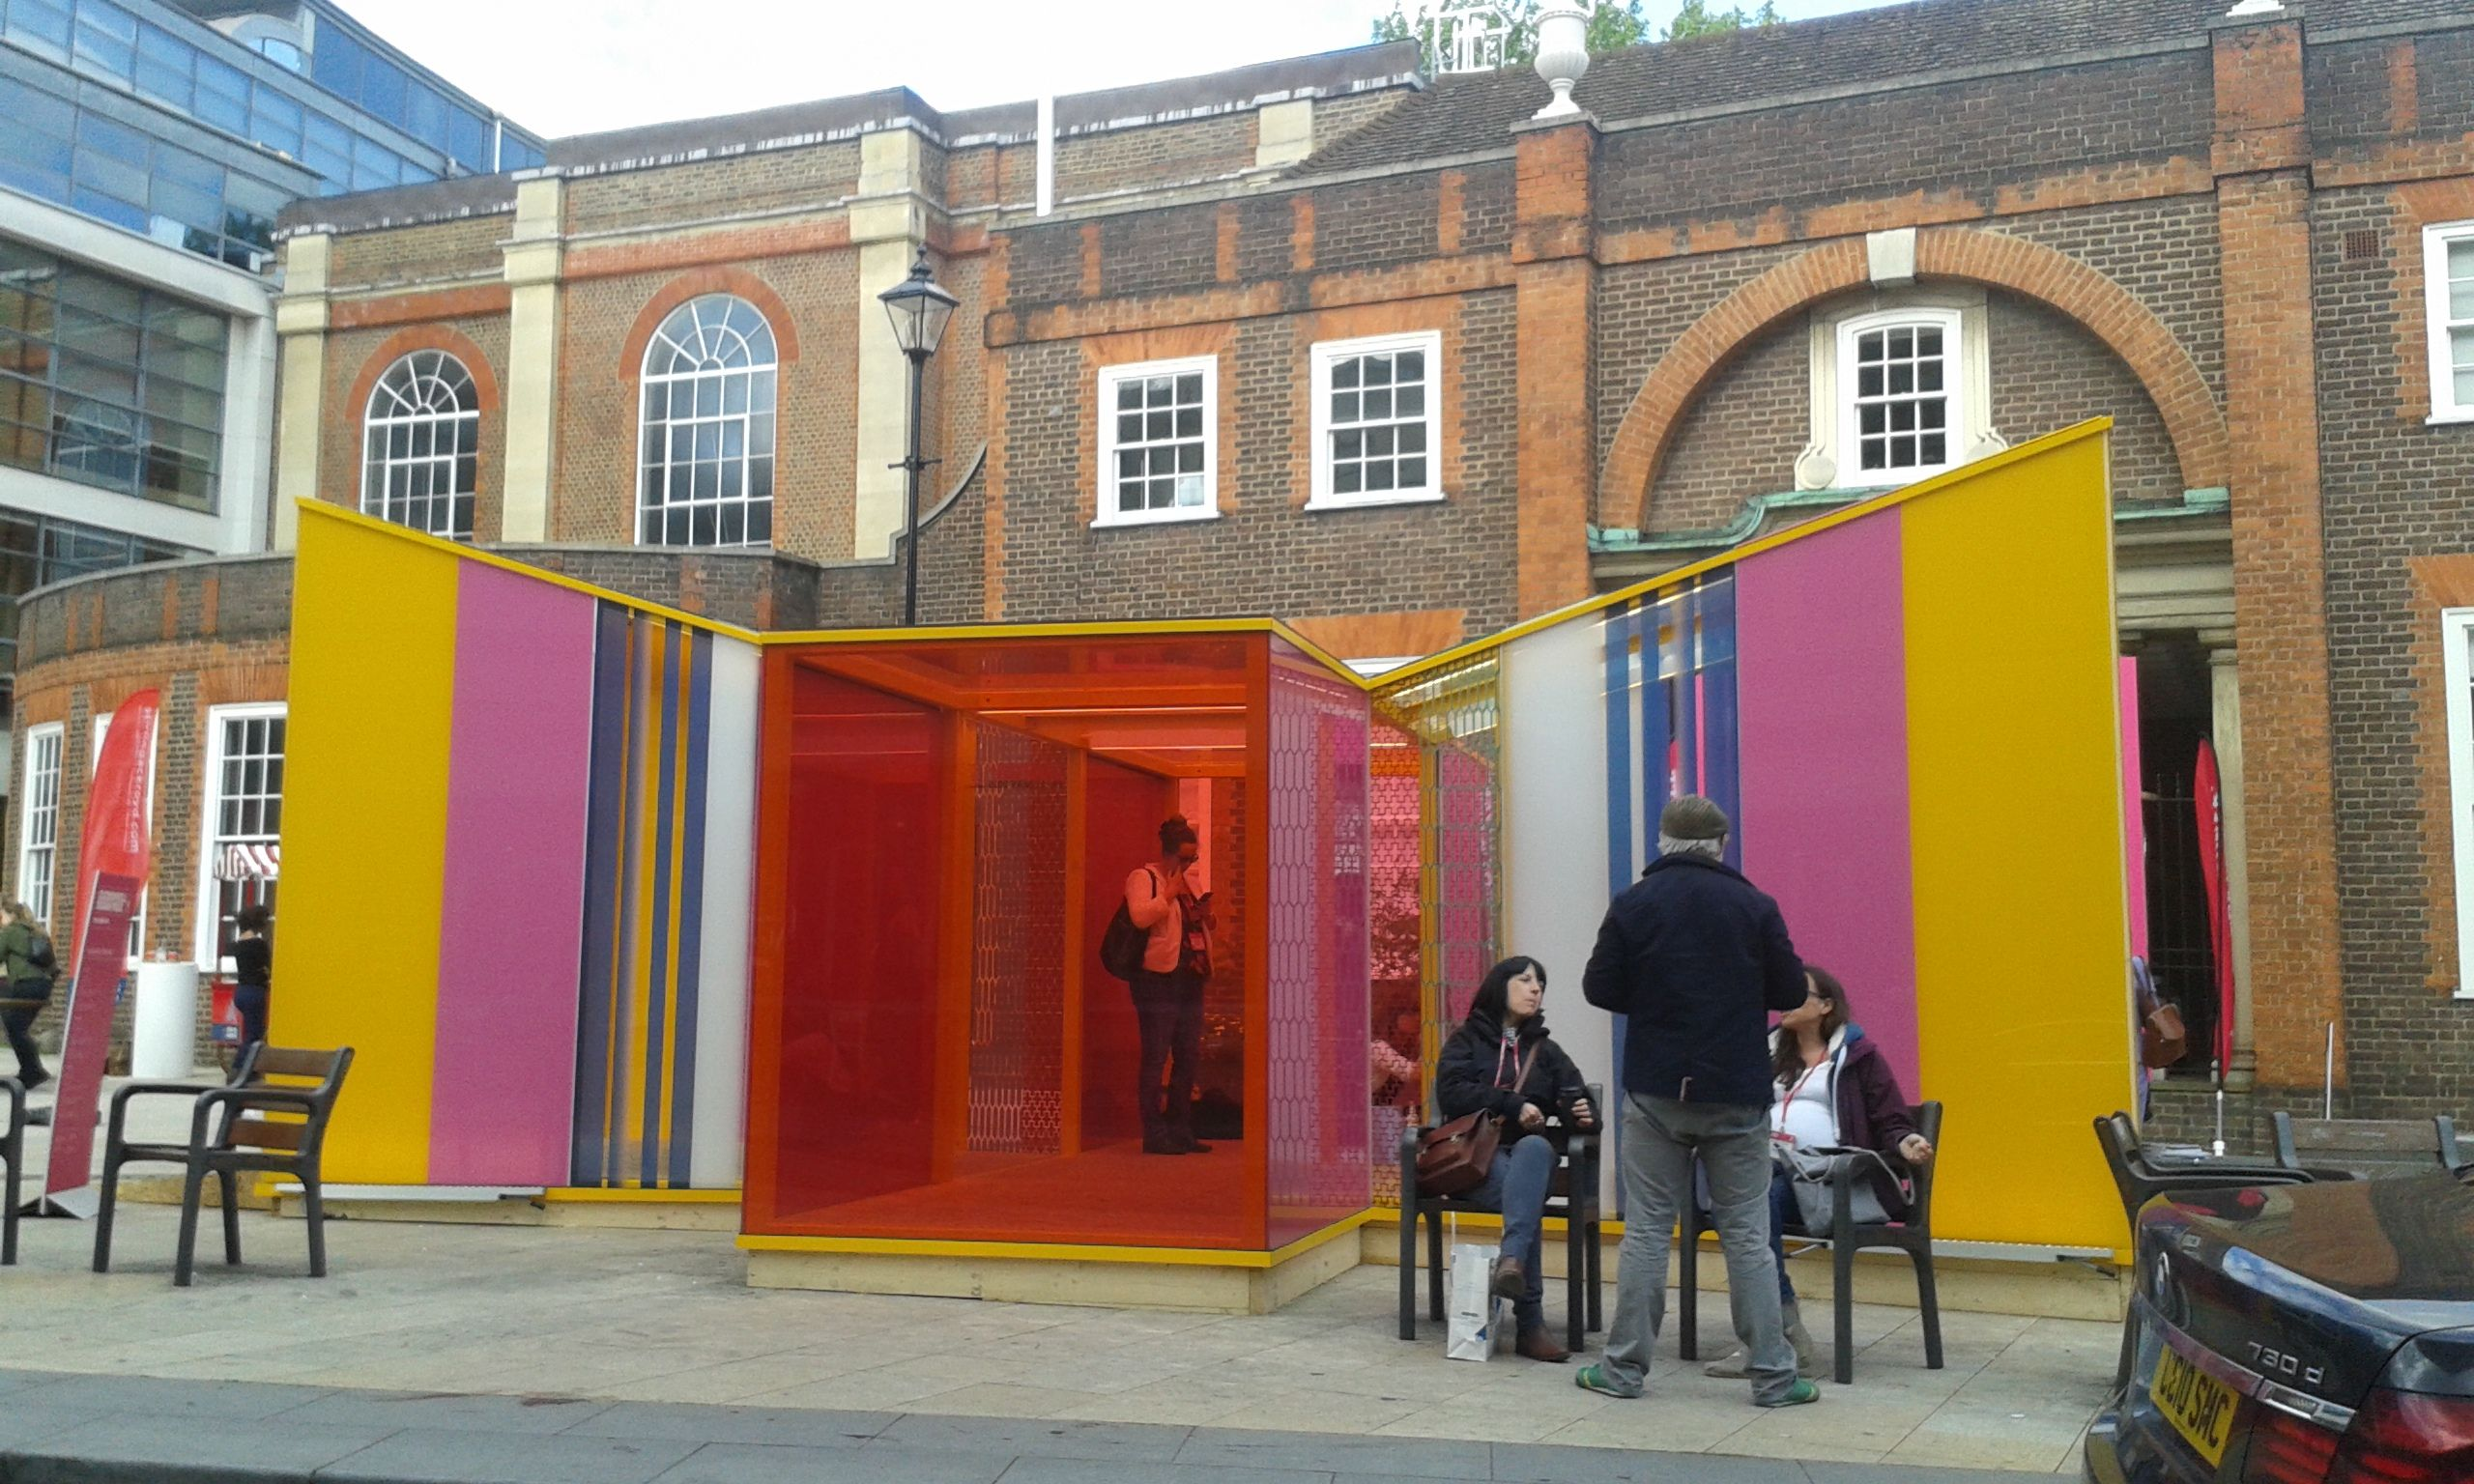 Glaze public pavilion on St John's Square, created by architects Cousins & Cousins and glaziers GxGlass